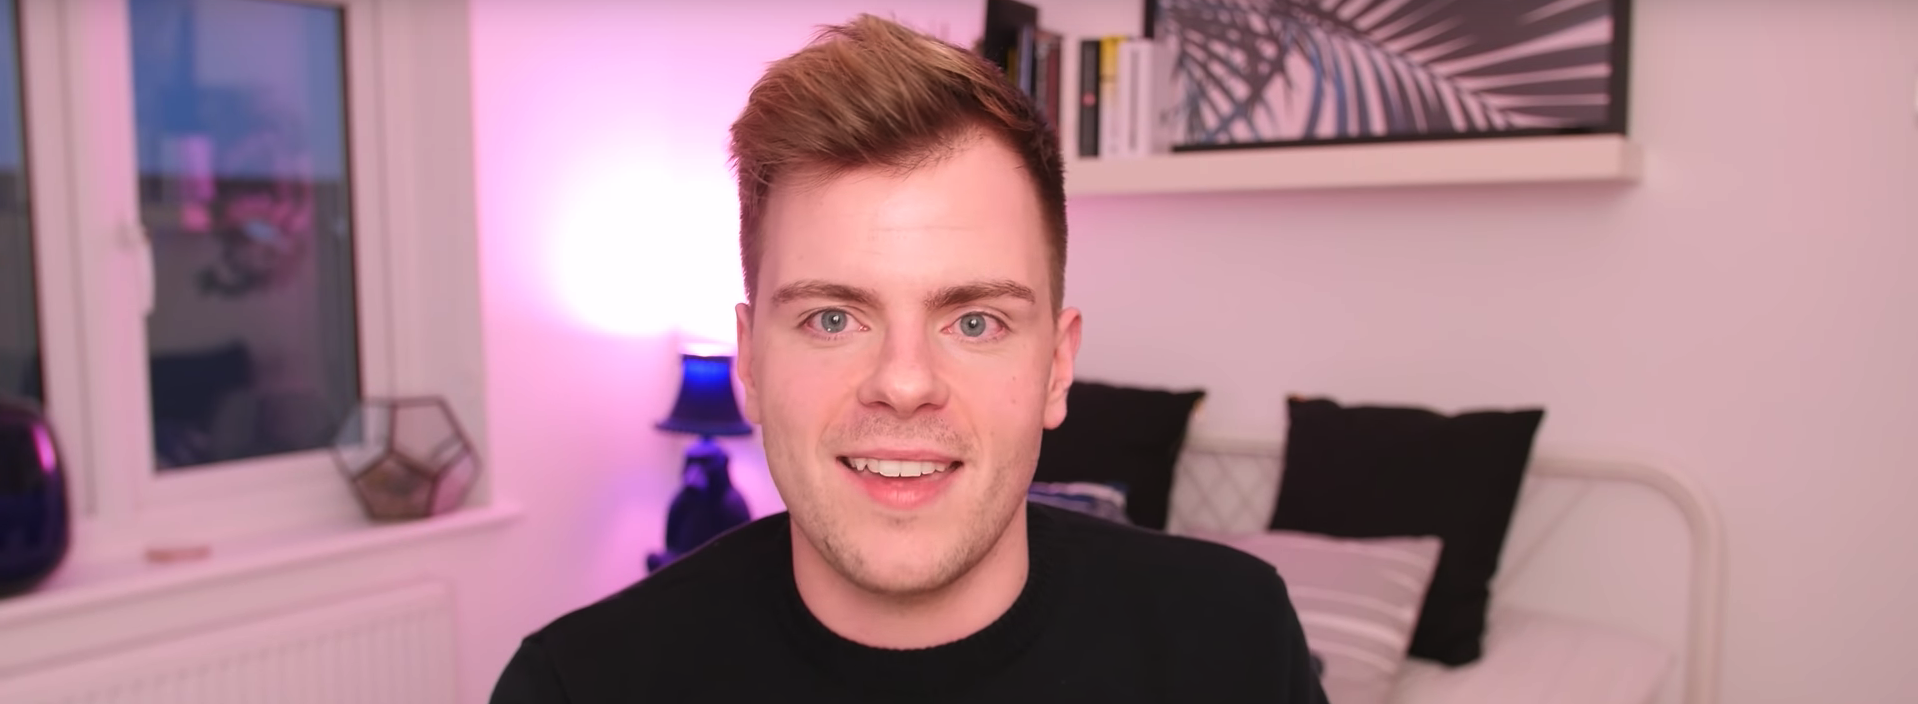 YouTuber Niki Albon comes out as gay in moving video that was 'nearly 28 years in the making'